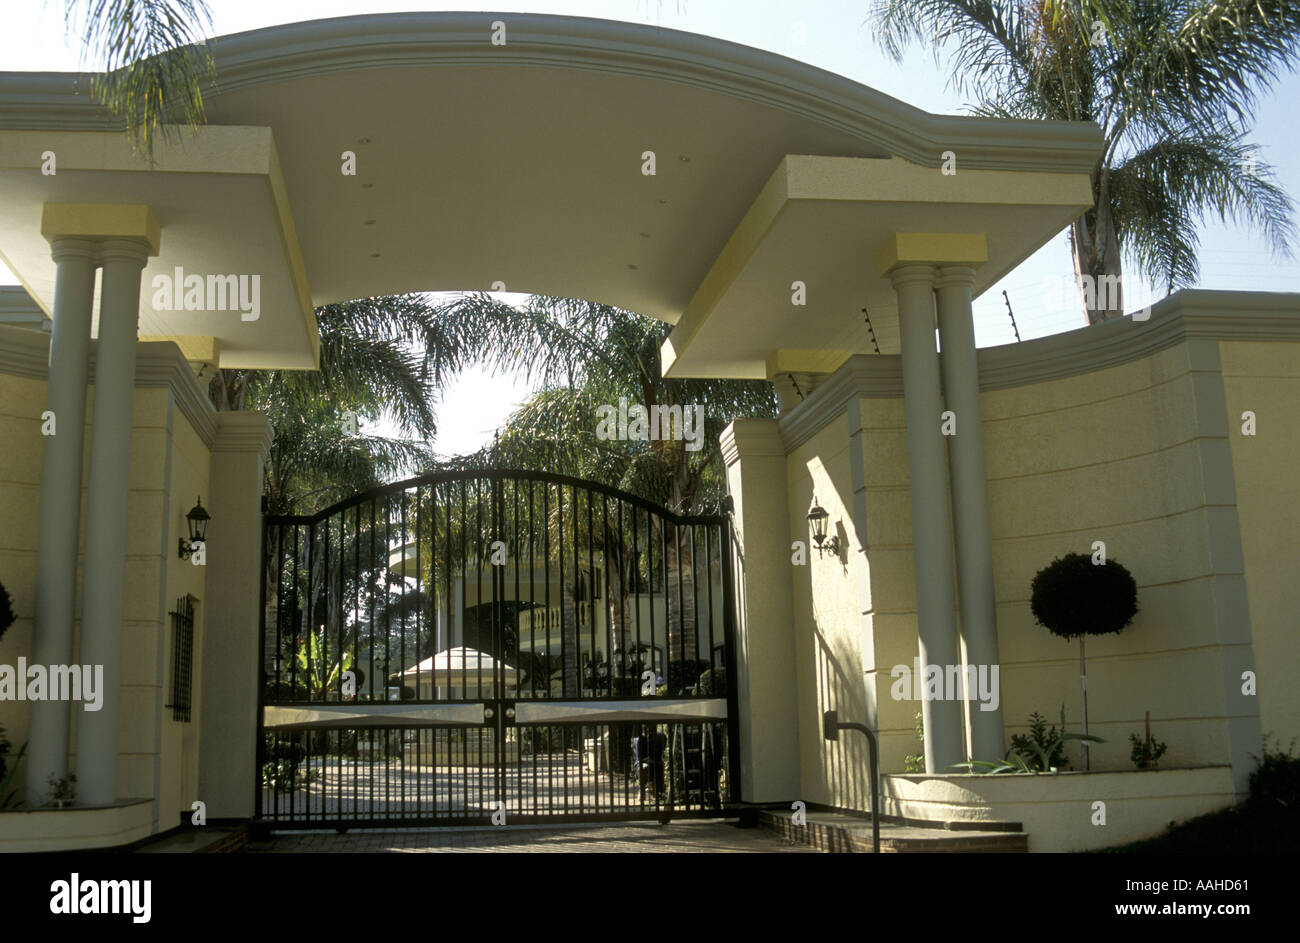 Imposing Wrought Iron Entrance Gates To Luxury Home In